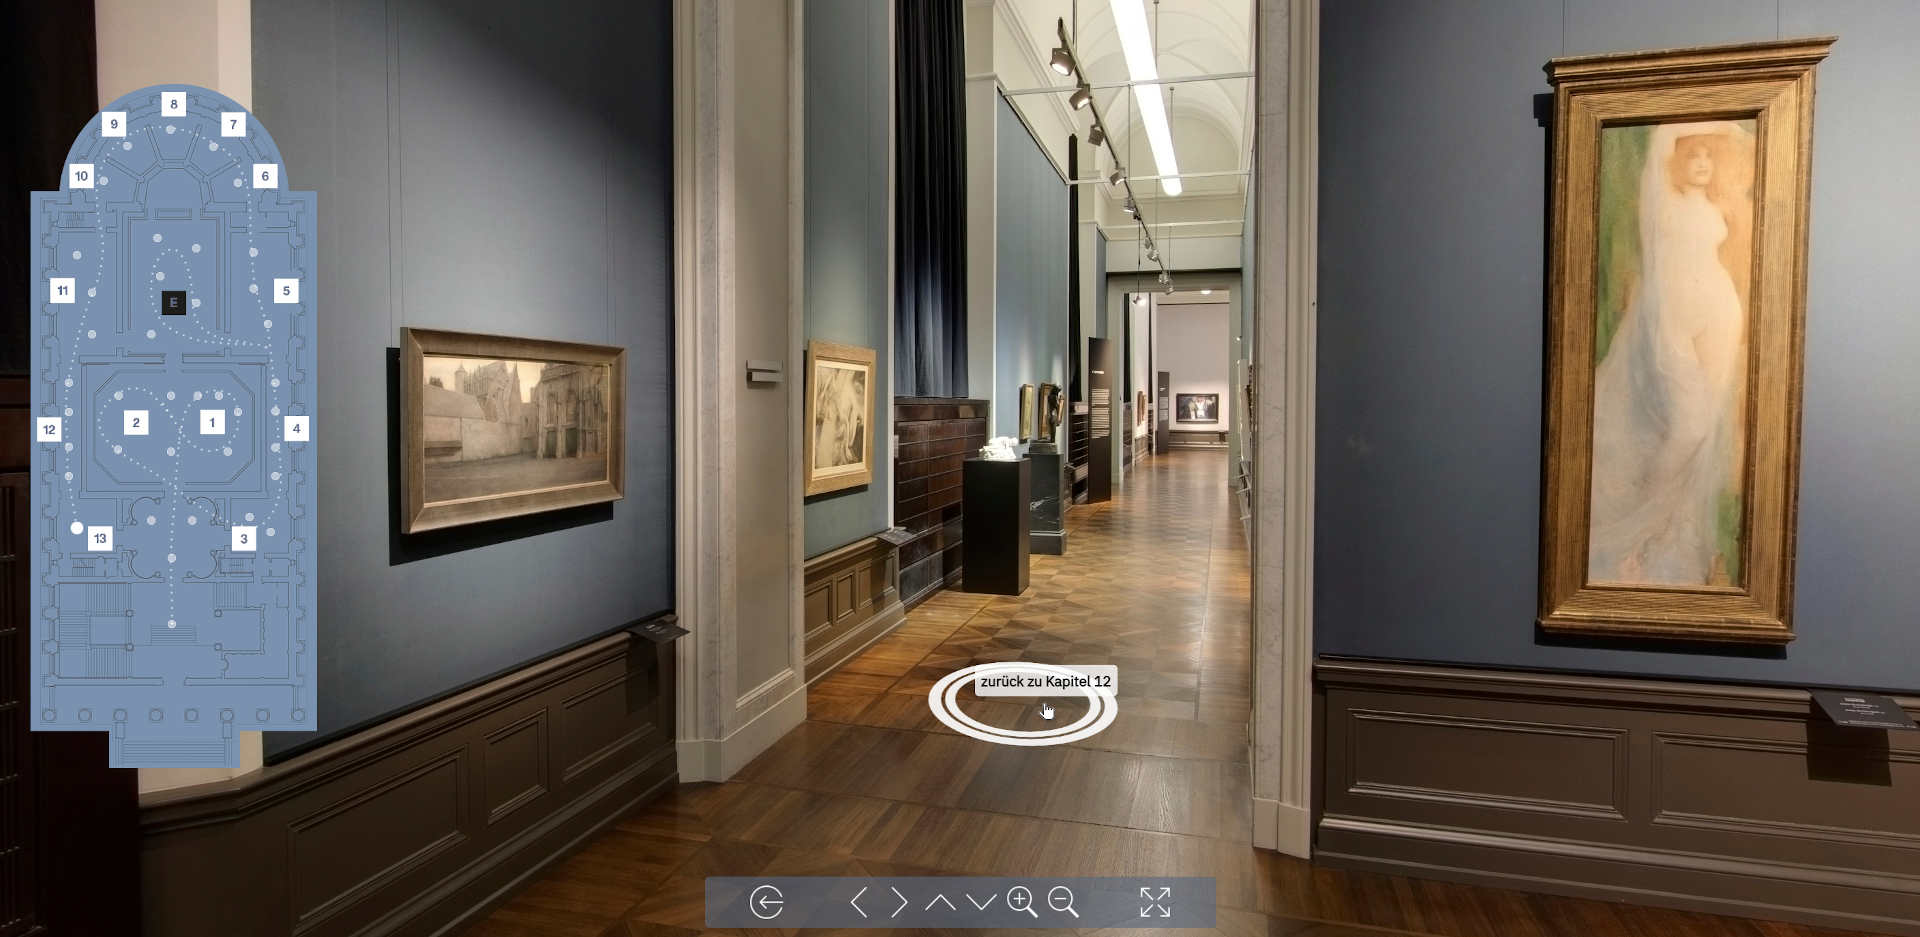 """360-degree tour through the special exhibition """"Decadence and Dark Dreams: Belgian Symbolism"""" at the Alte Nationalgalerie"""